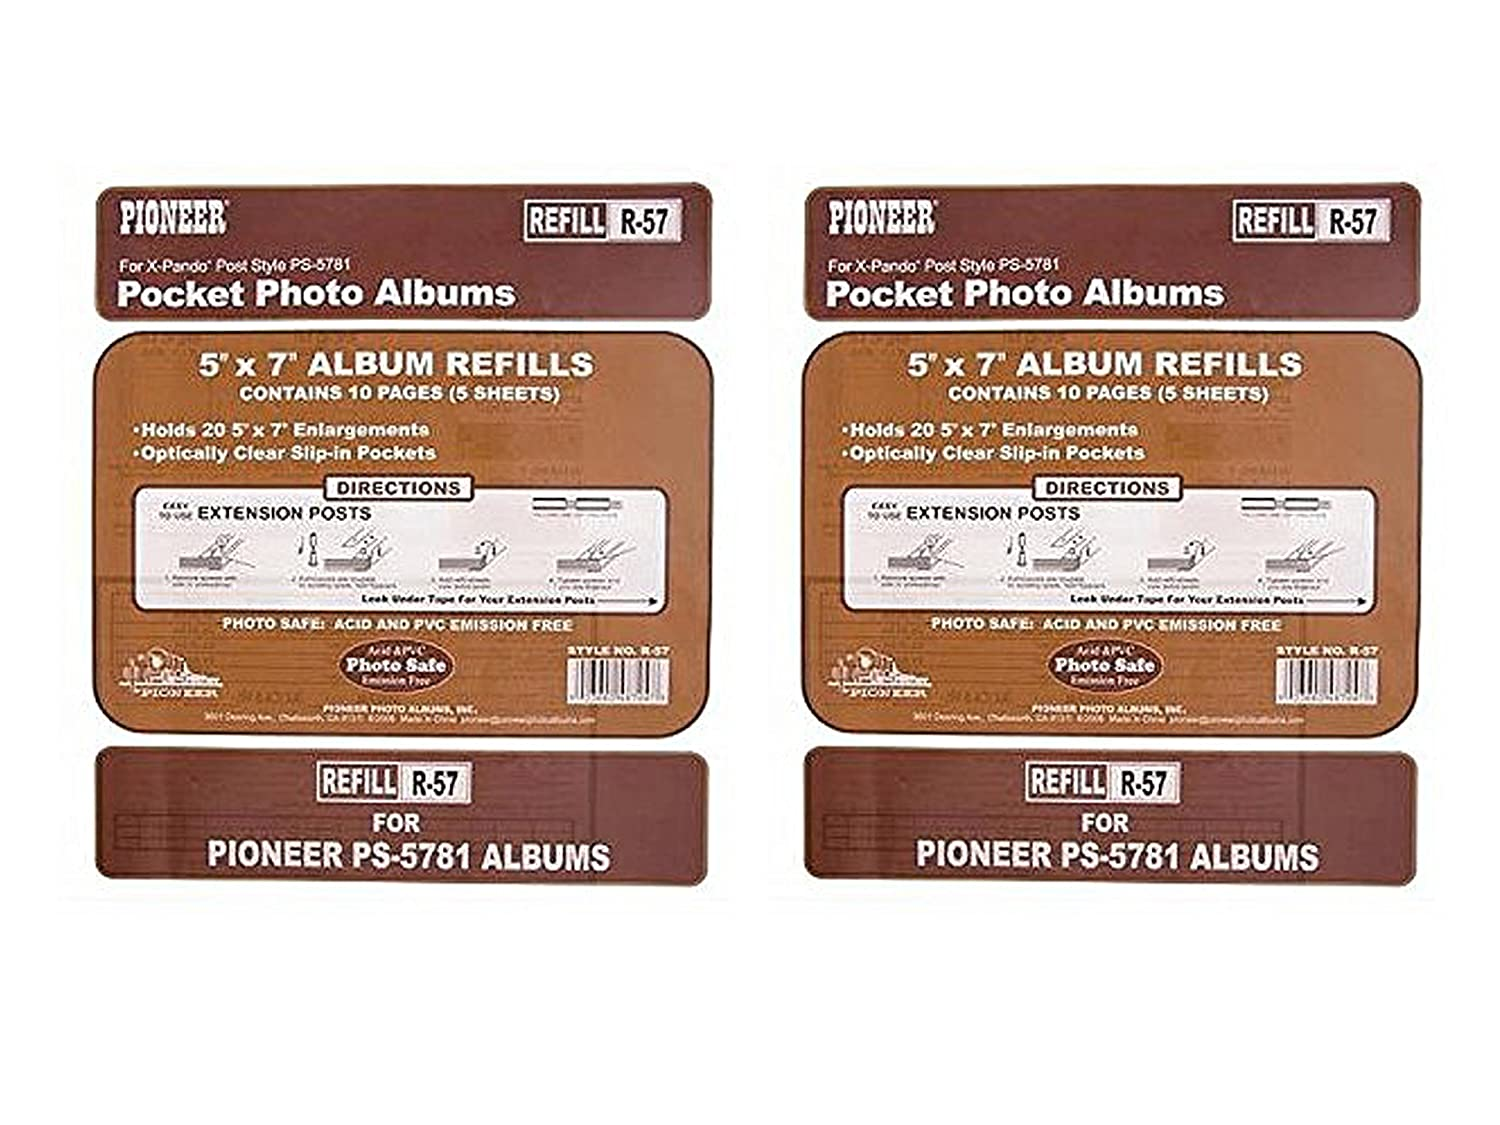 Set of 2 Pioneer Double 5x7 Pocket Album Refill Page Bundled by Maven Gifts PIONEER PHOTO ALBUMS INC.